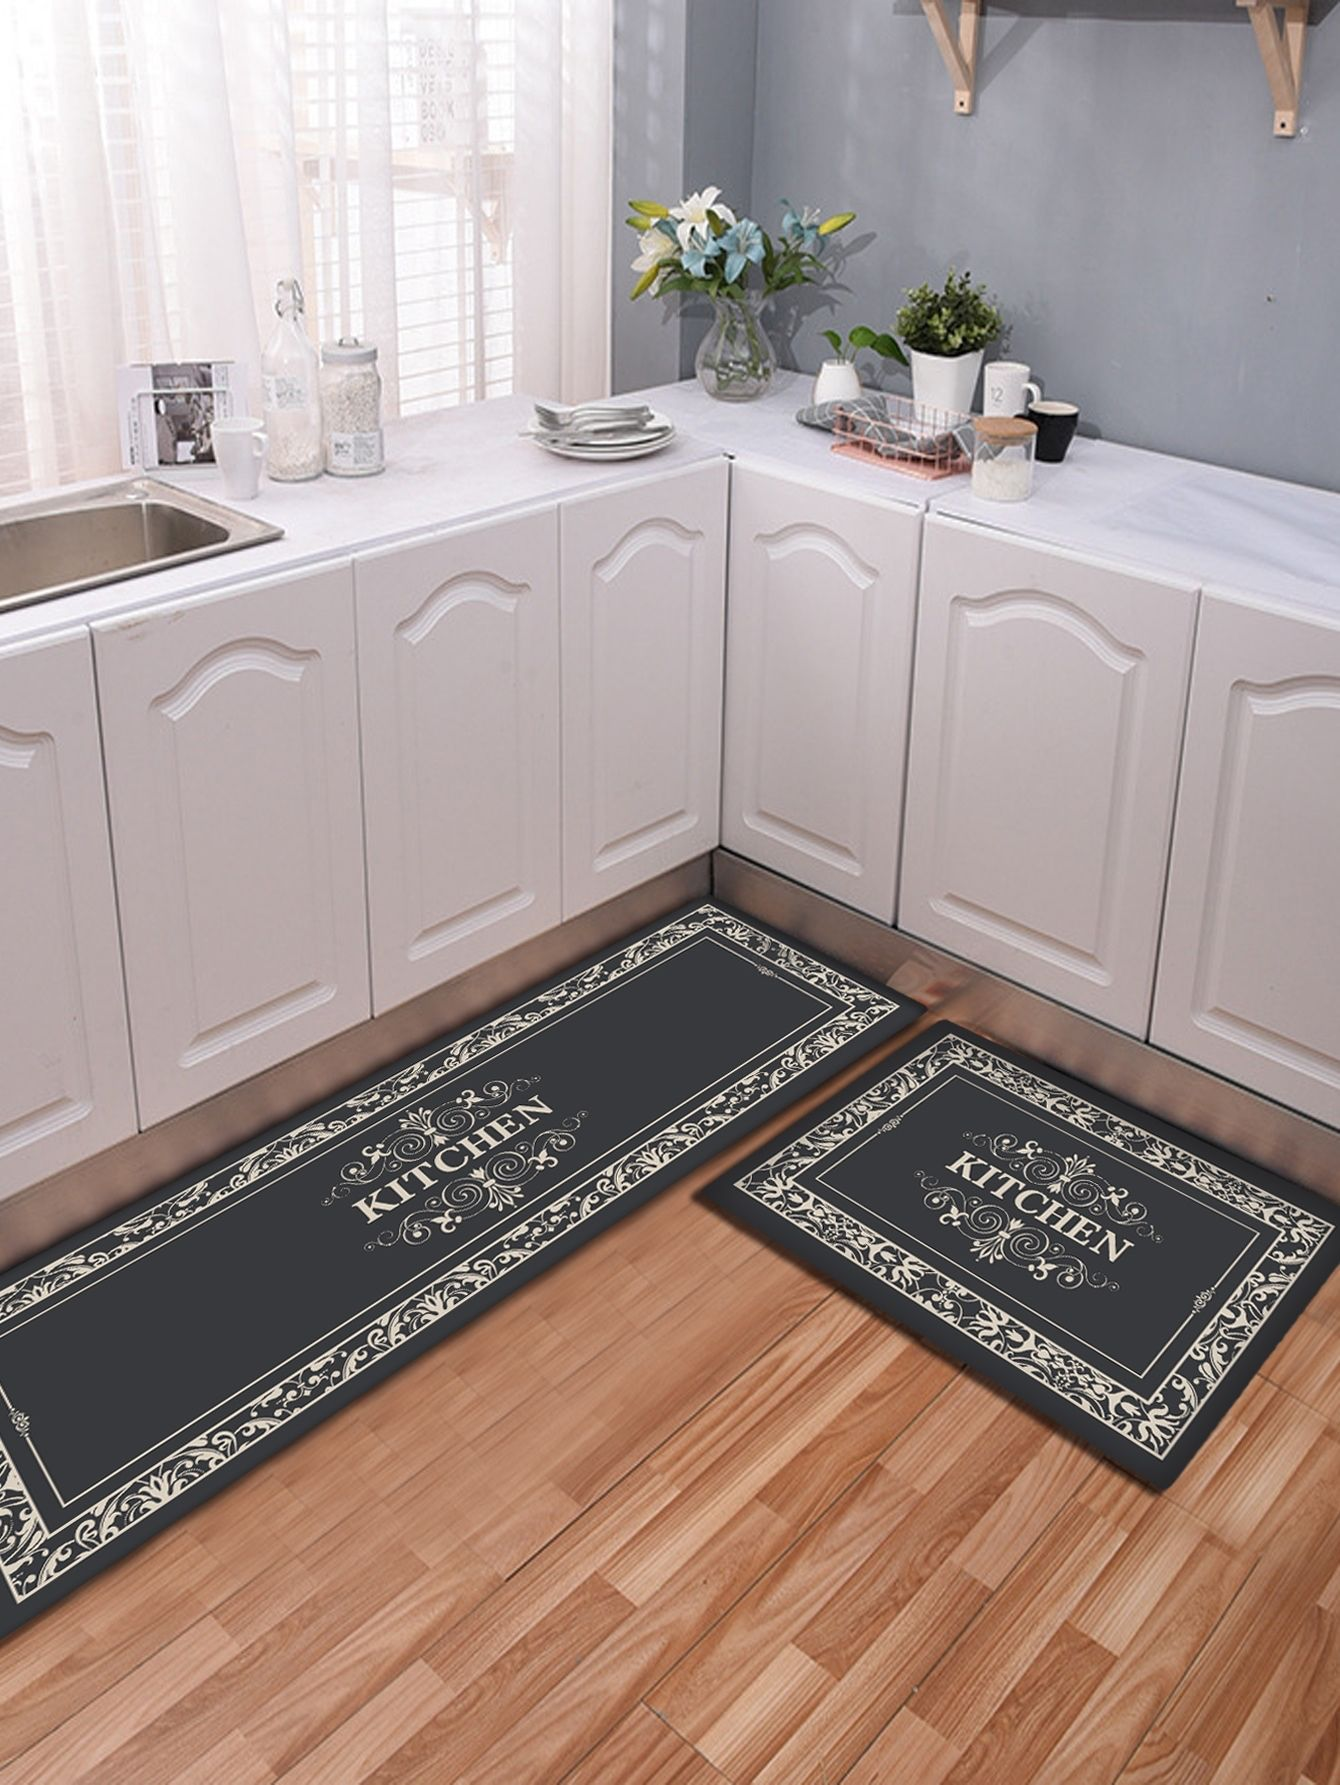 Letter Print Non Slip Kitchen Mat 1pc Check Out This Letter Print Non Slip Kitchen Mat 1pc On Shein And Explor In 2020 Kitchen Mat Printed Floor Mat Kitchen Mats Floor